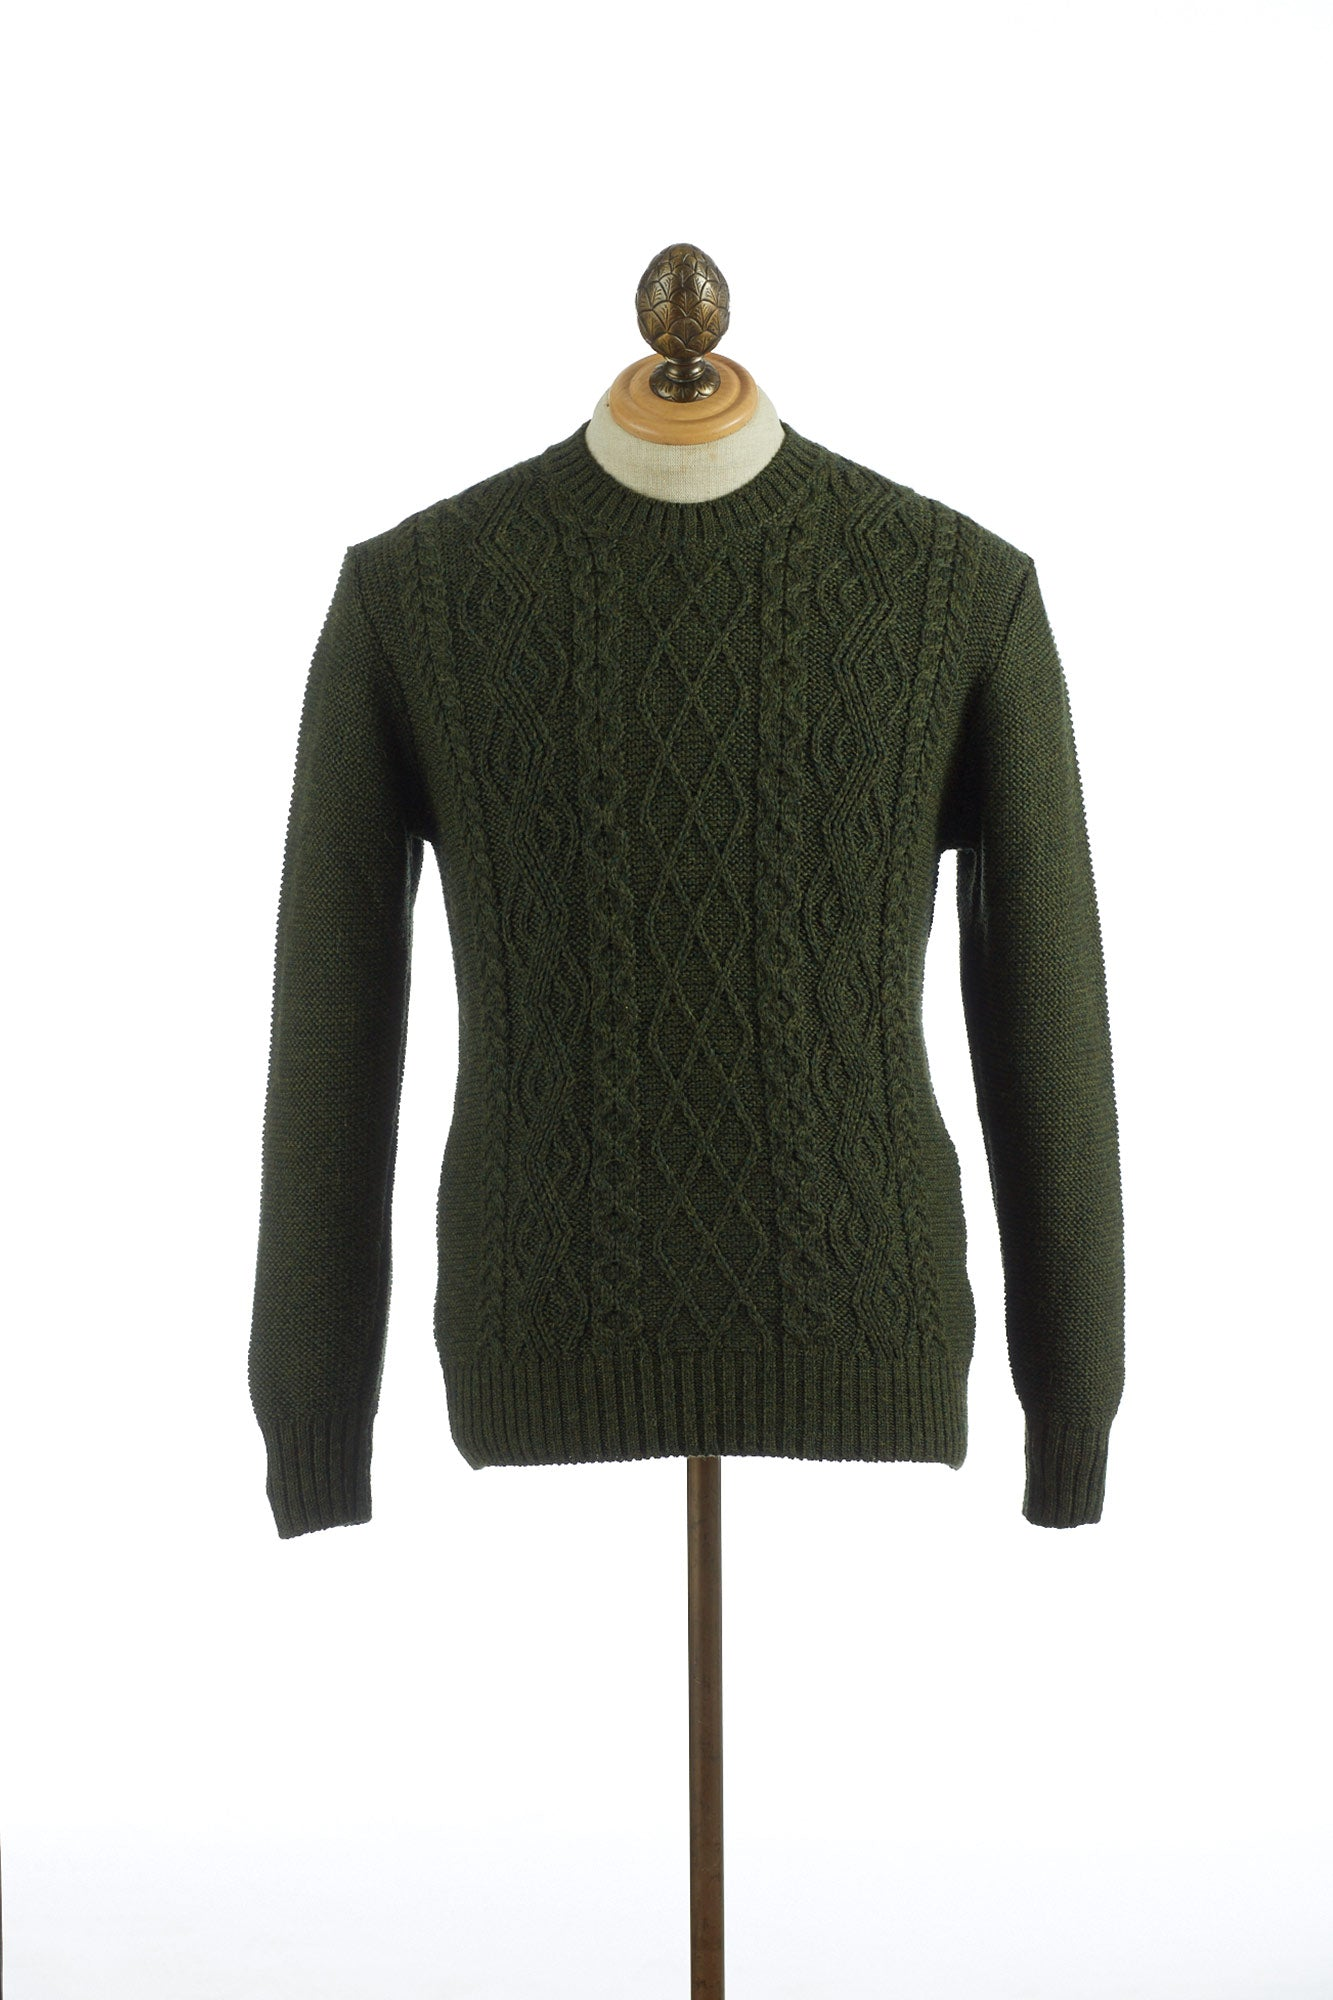 Inis Meáin Aran Green Cable Knit Crewneck Sweater